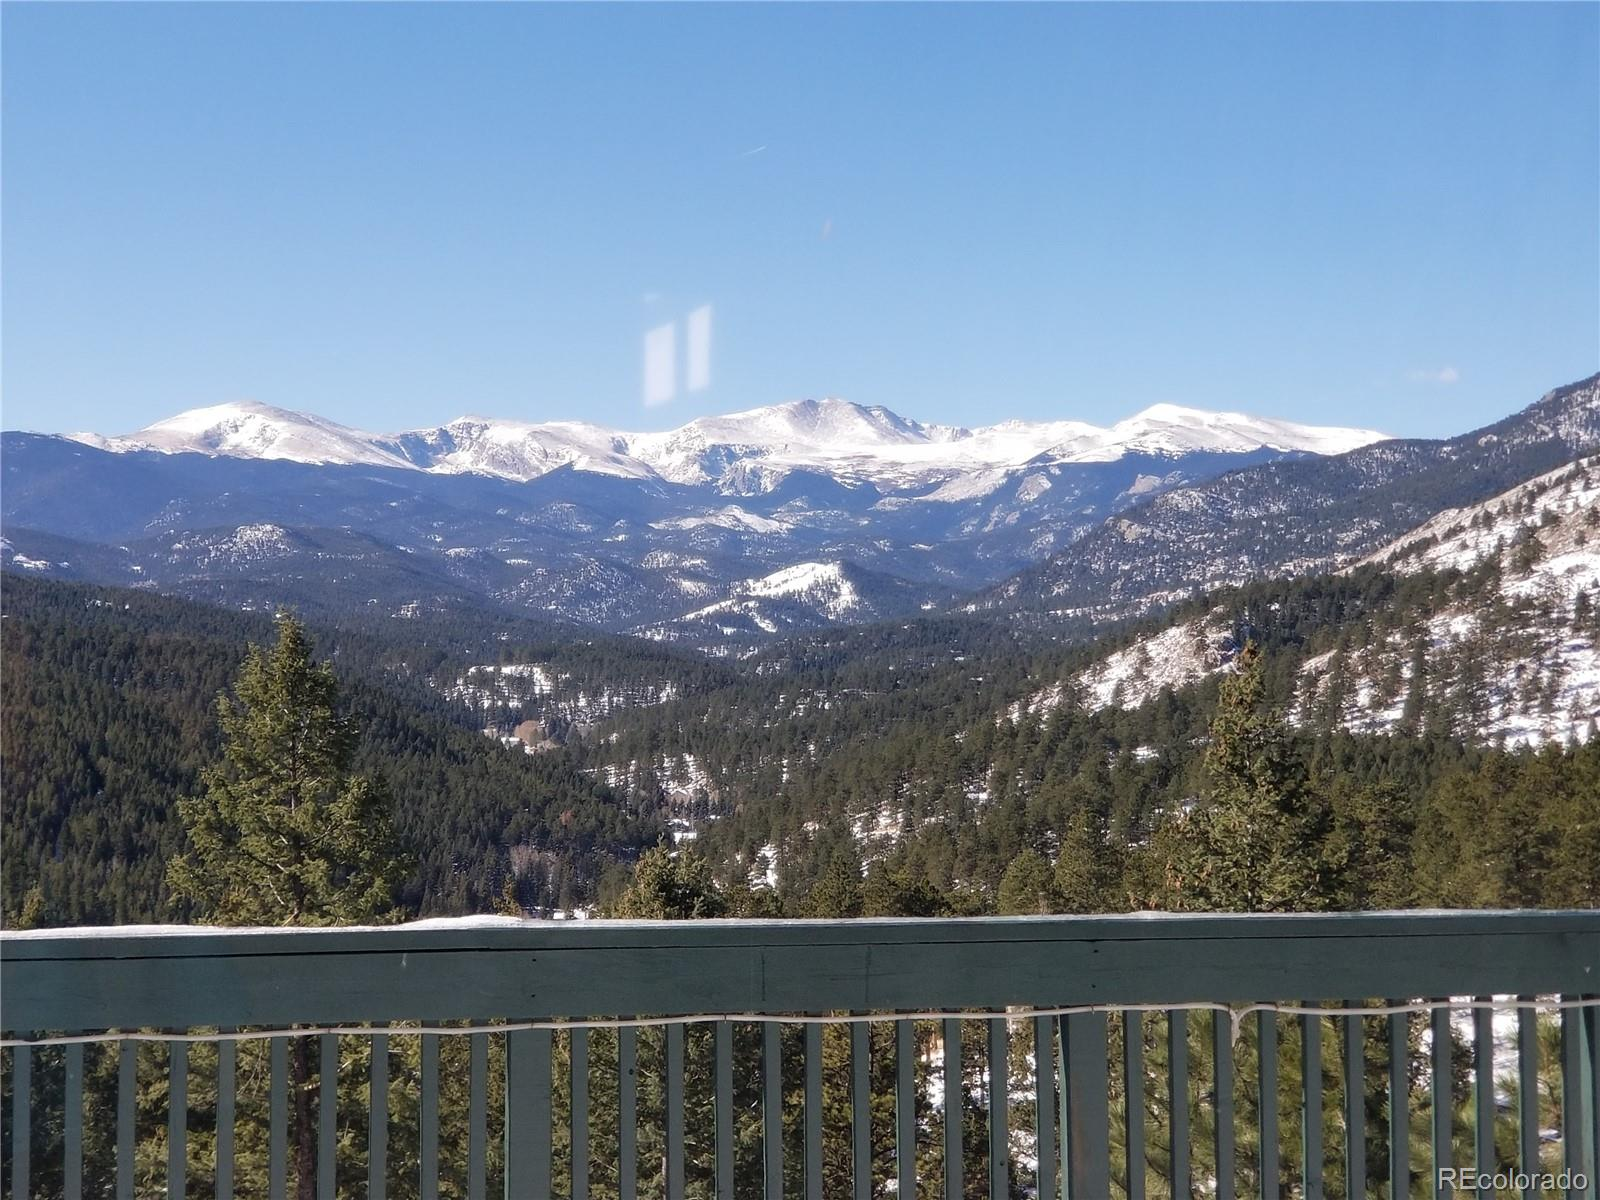 3883 Mountainside Trail, Evergreen, CO 80439 - Evergreen, CO real estate listing